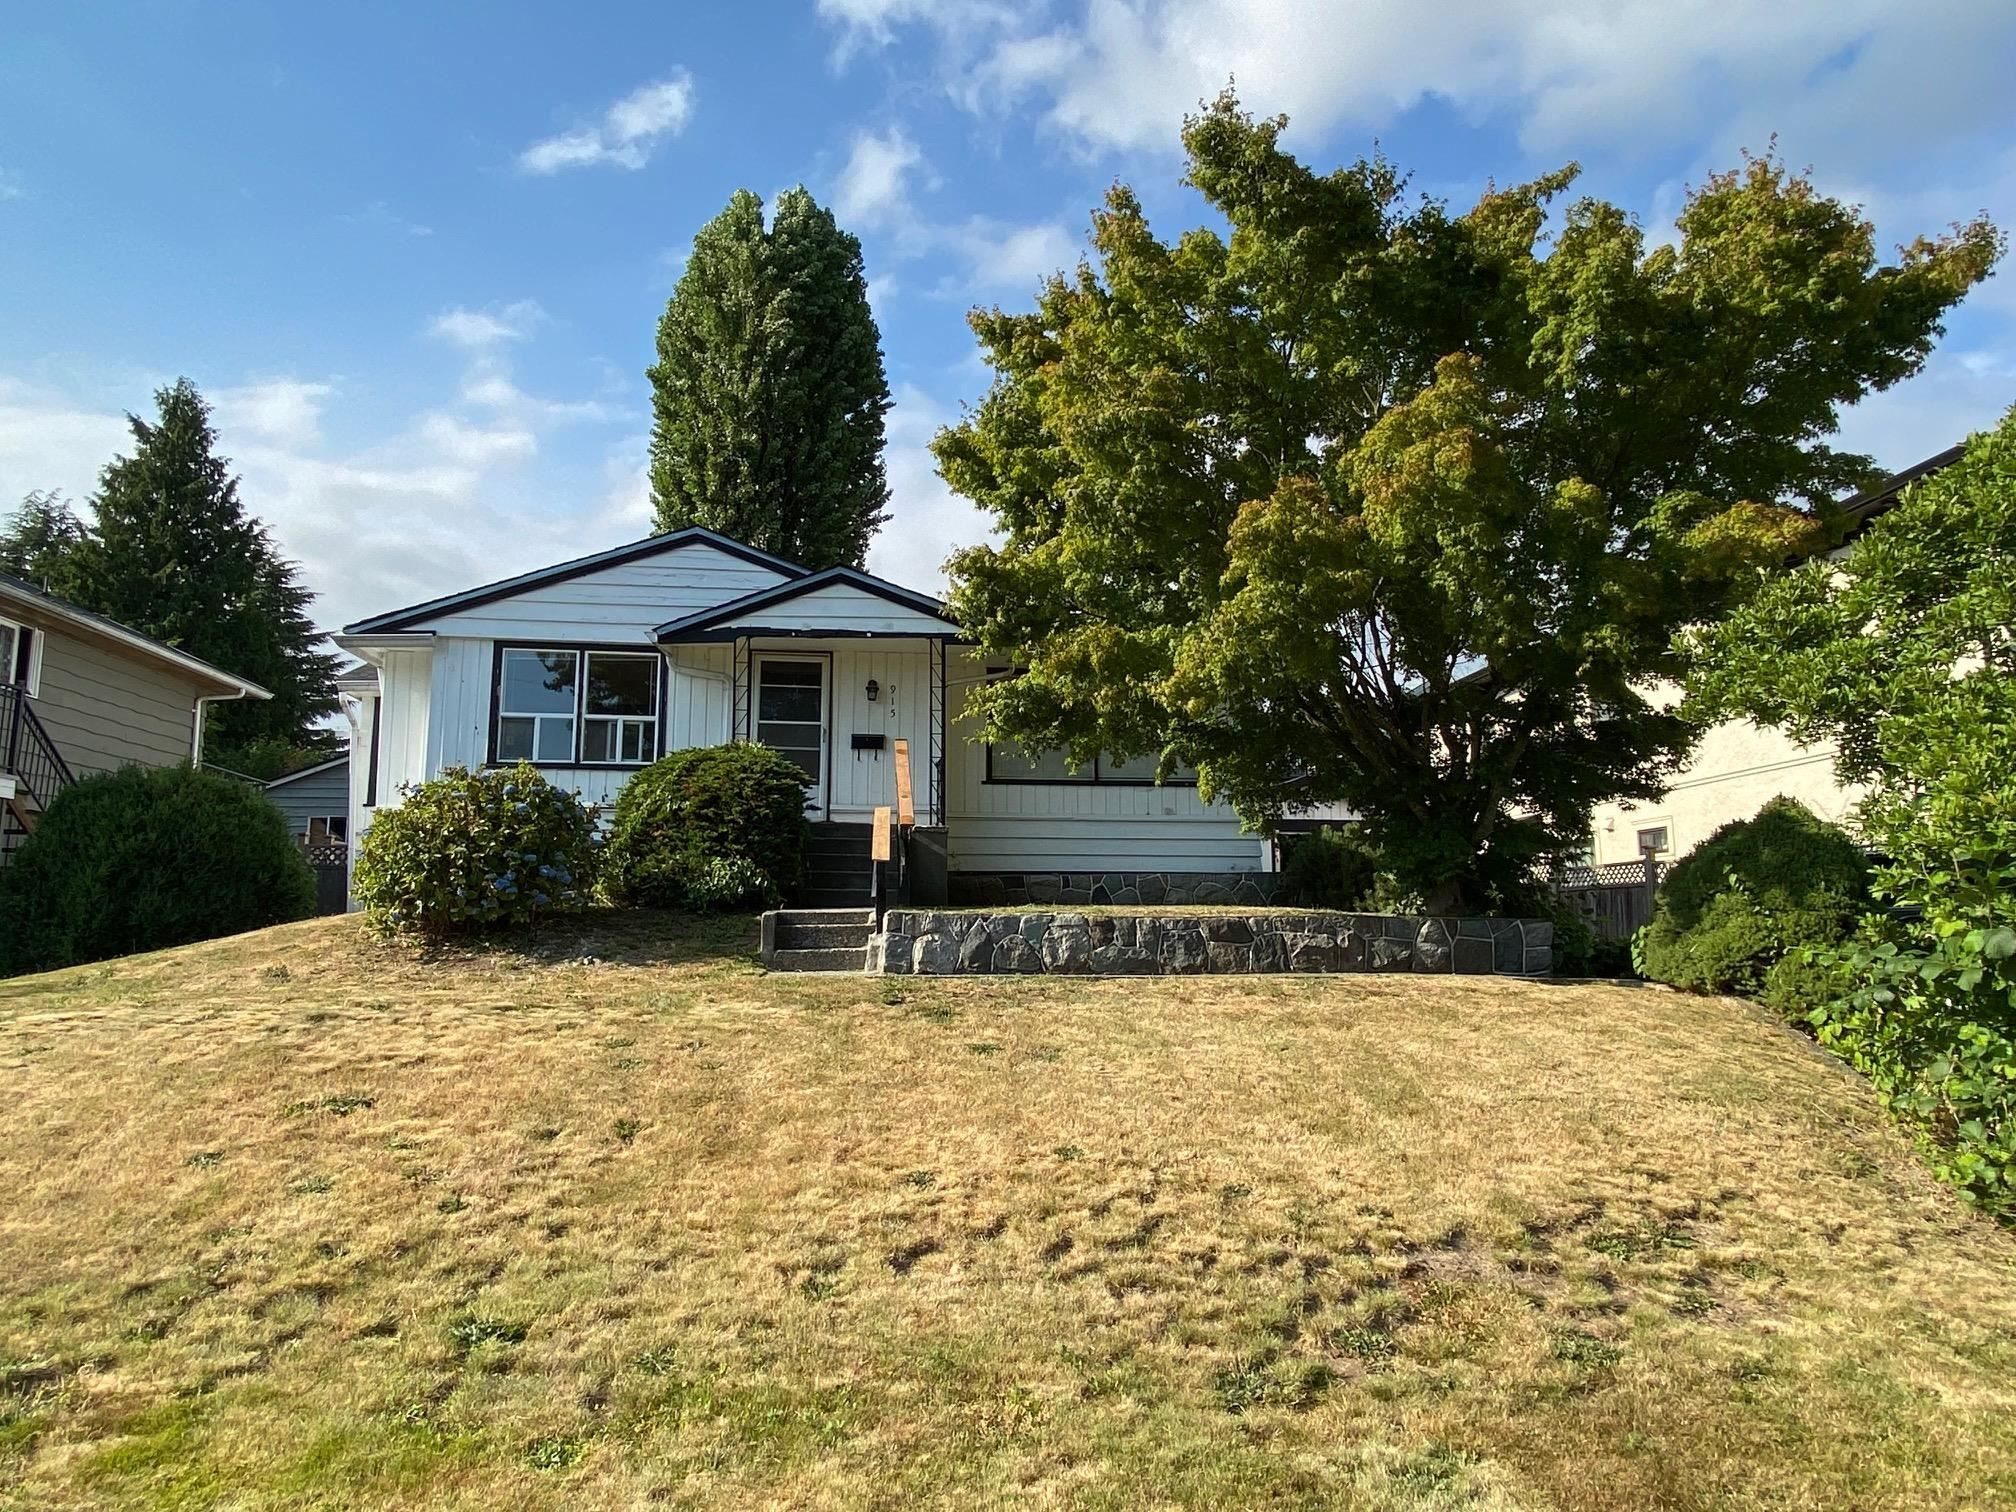 Main Photo: 915 WALLS Avenue in Coquitlam: Maillardville House for sale : MLS®# R2610718